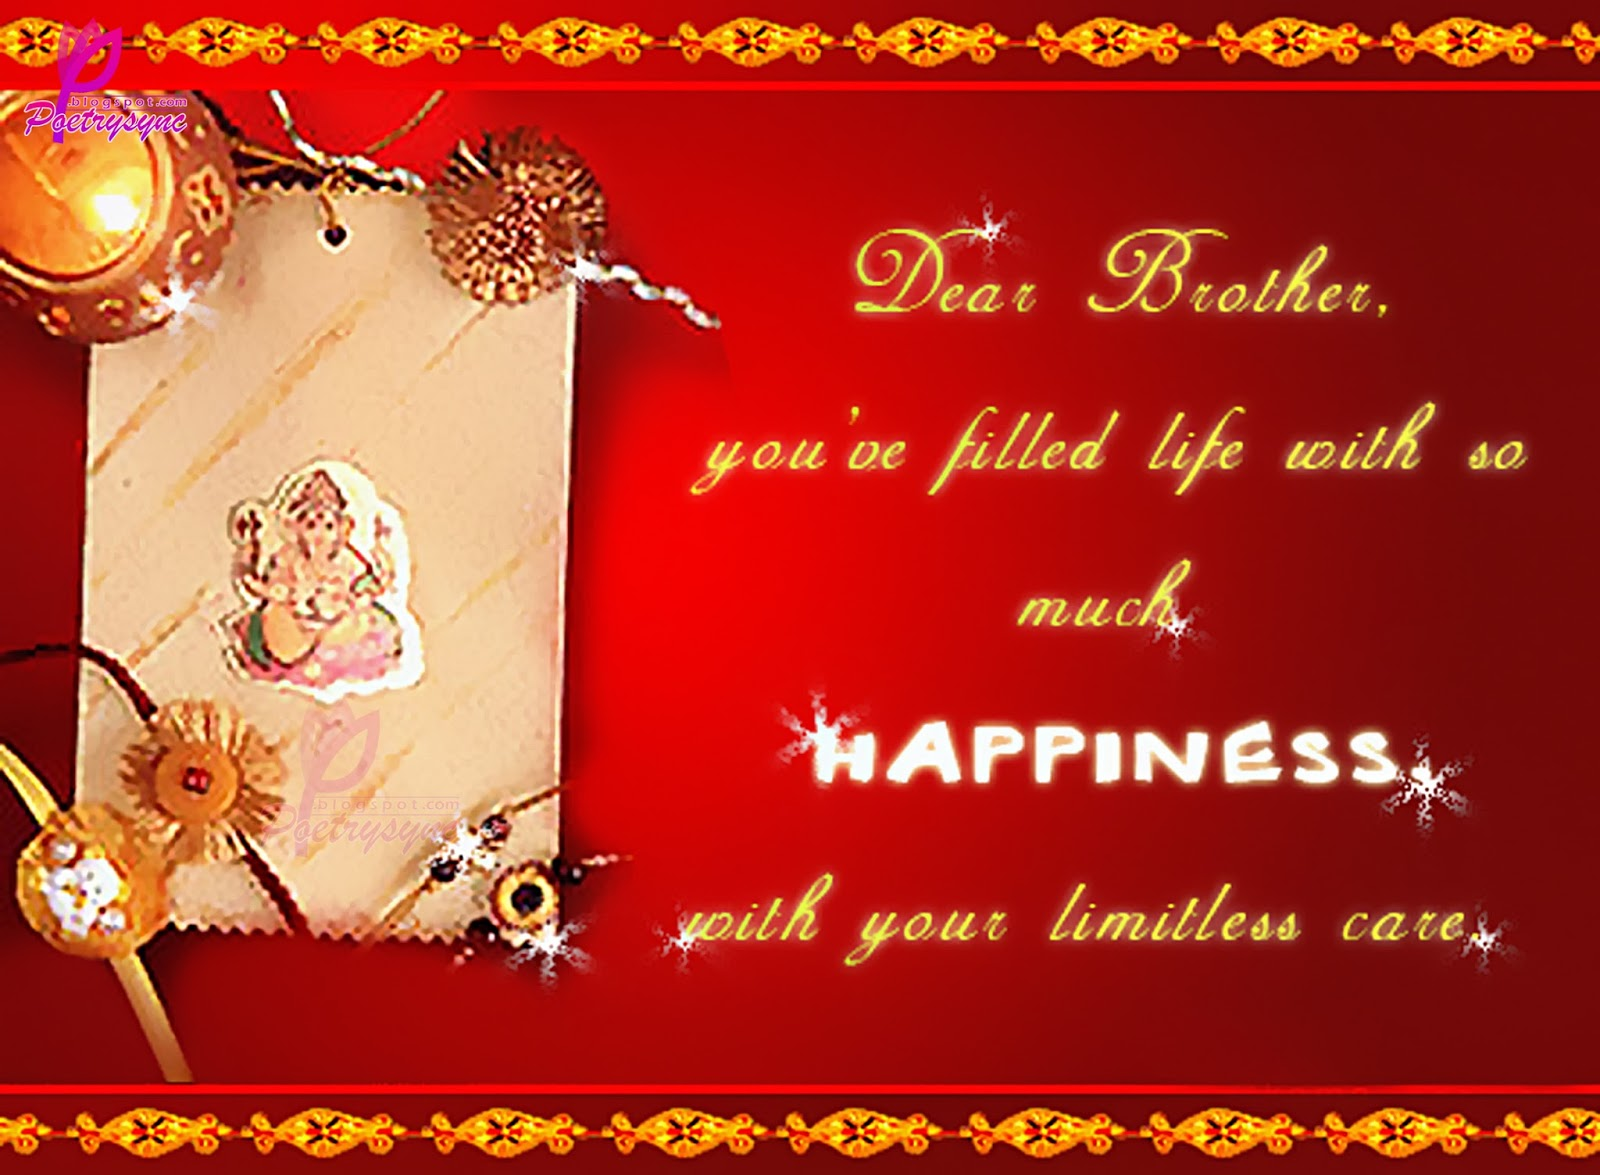 Meaning of raksha bandhan raksha bandhan wishes greeting cards check the latest images of raksha bandhan wishes greeting cards m4hsunfo